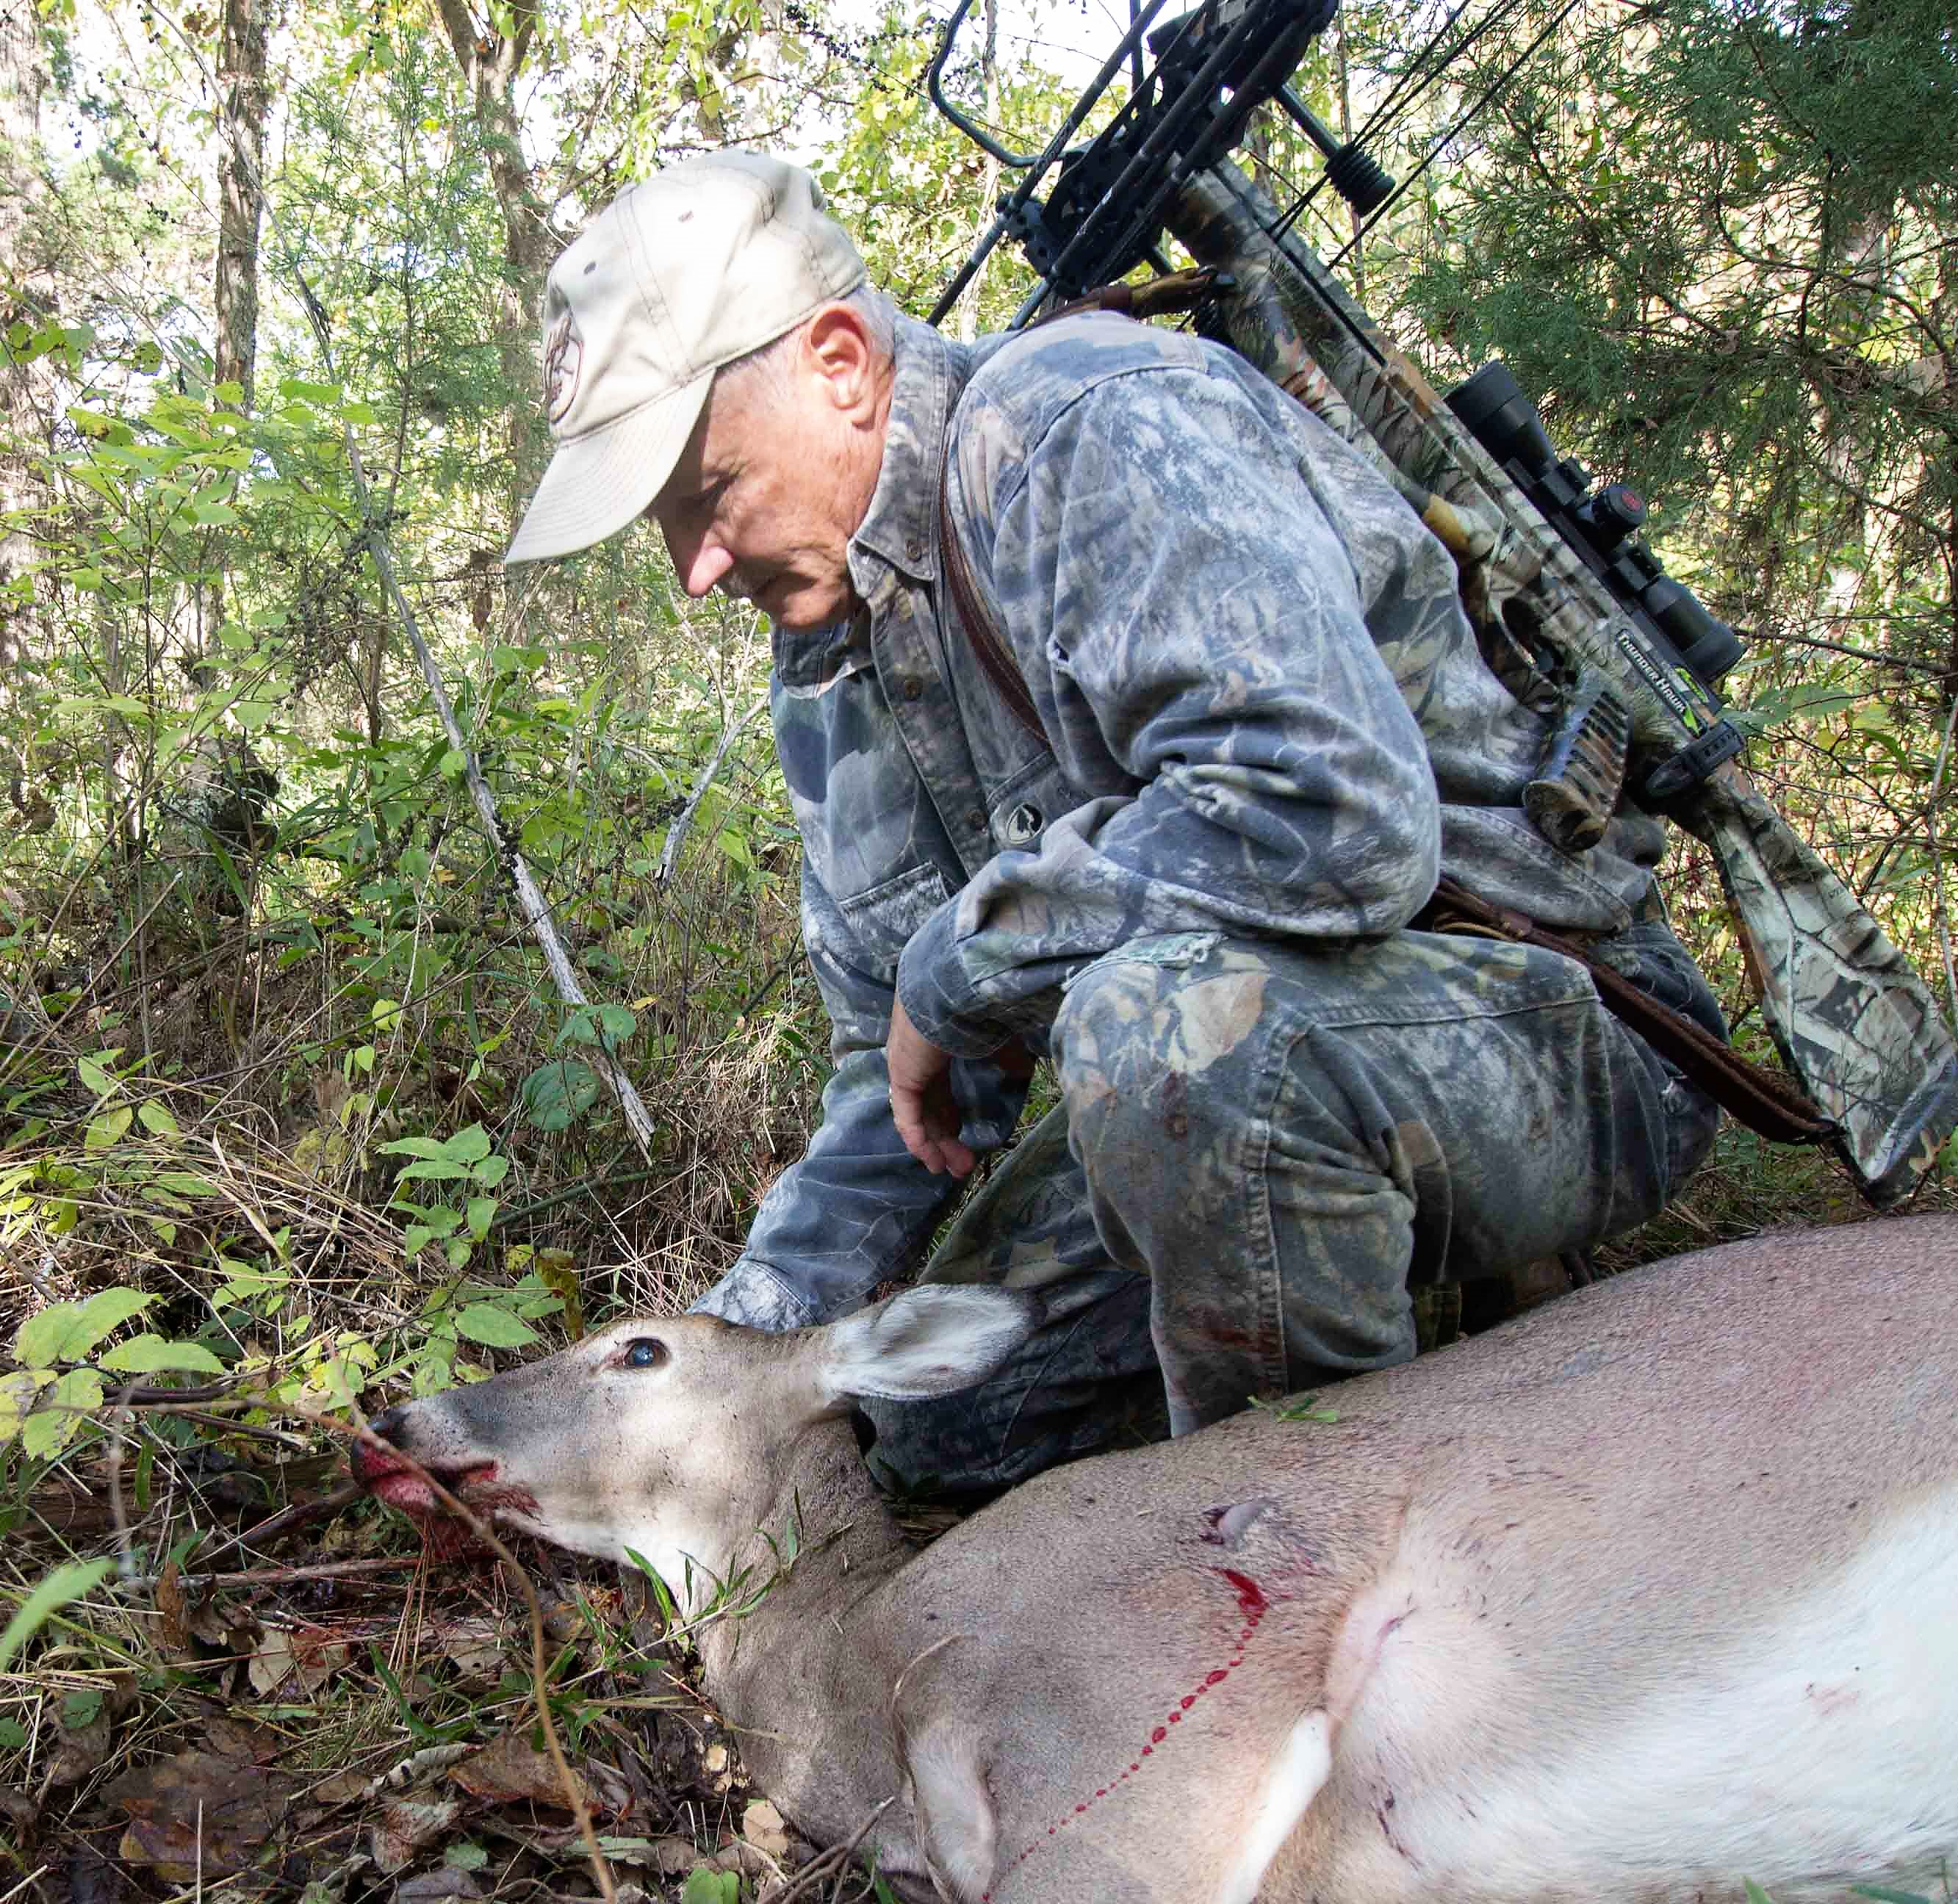 At under 40 yards, crossbows are a deadly and precision hunting tool that eliminates runaway waste, I donated this deer to the needy Food Kitchen.  Jim Low Photo